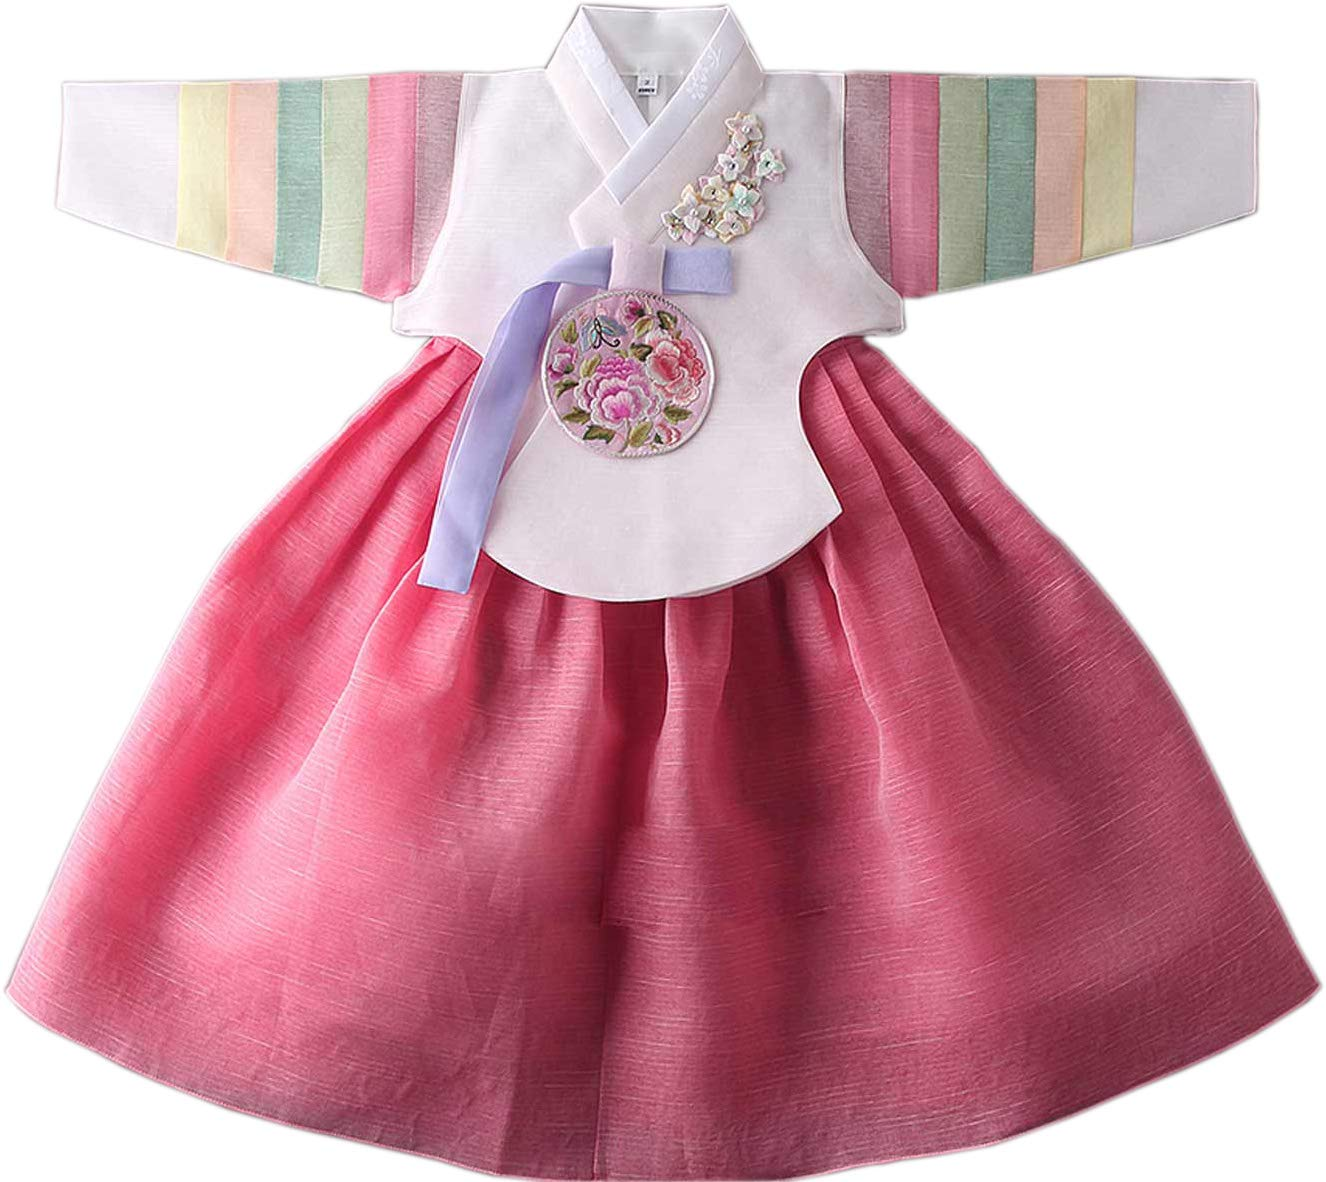 Korean Traditional Hanbok Babies Girls Costumes Dress Birthday Party DOLBOK 1-15 Ages yjg101 (7 Ages) by hanbok store